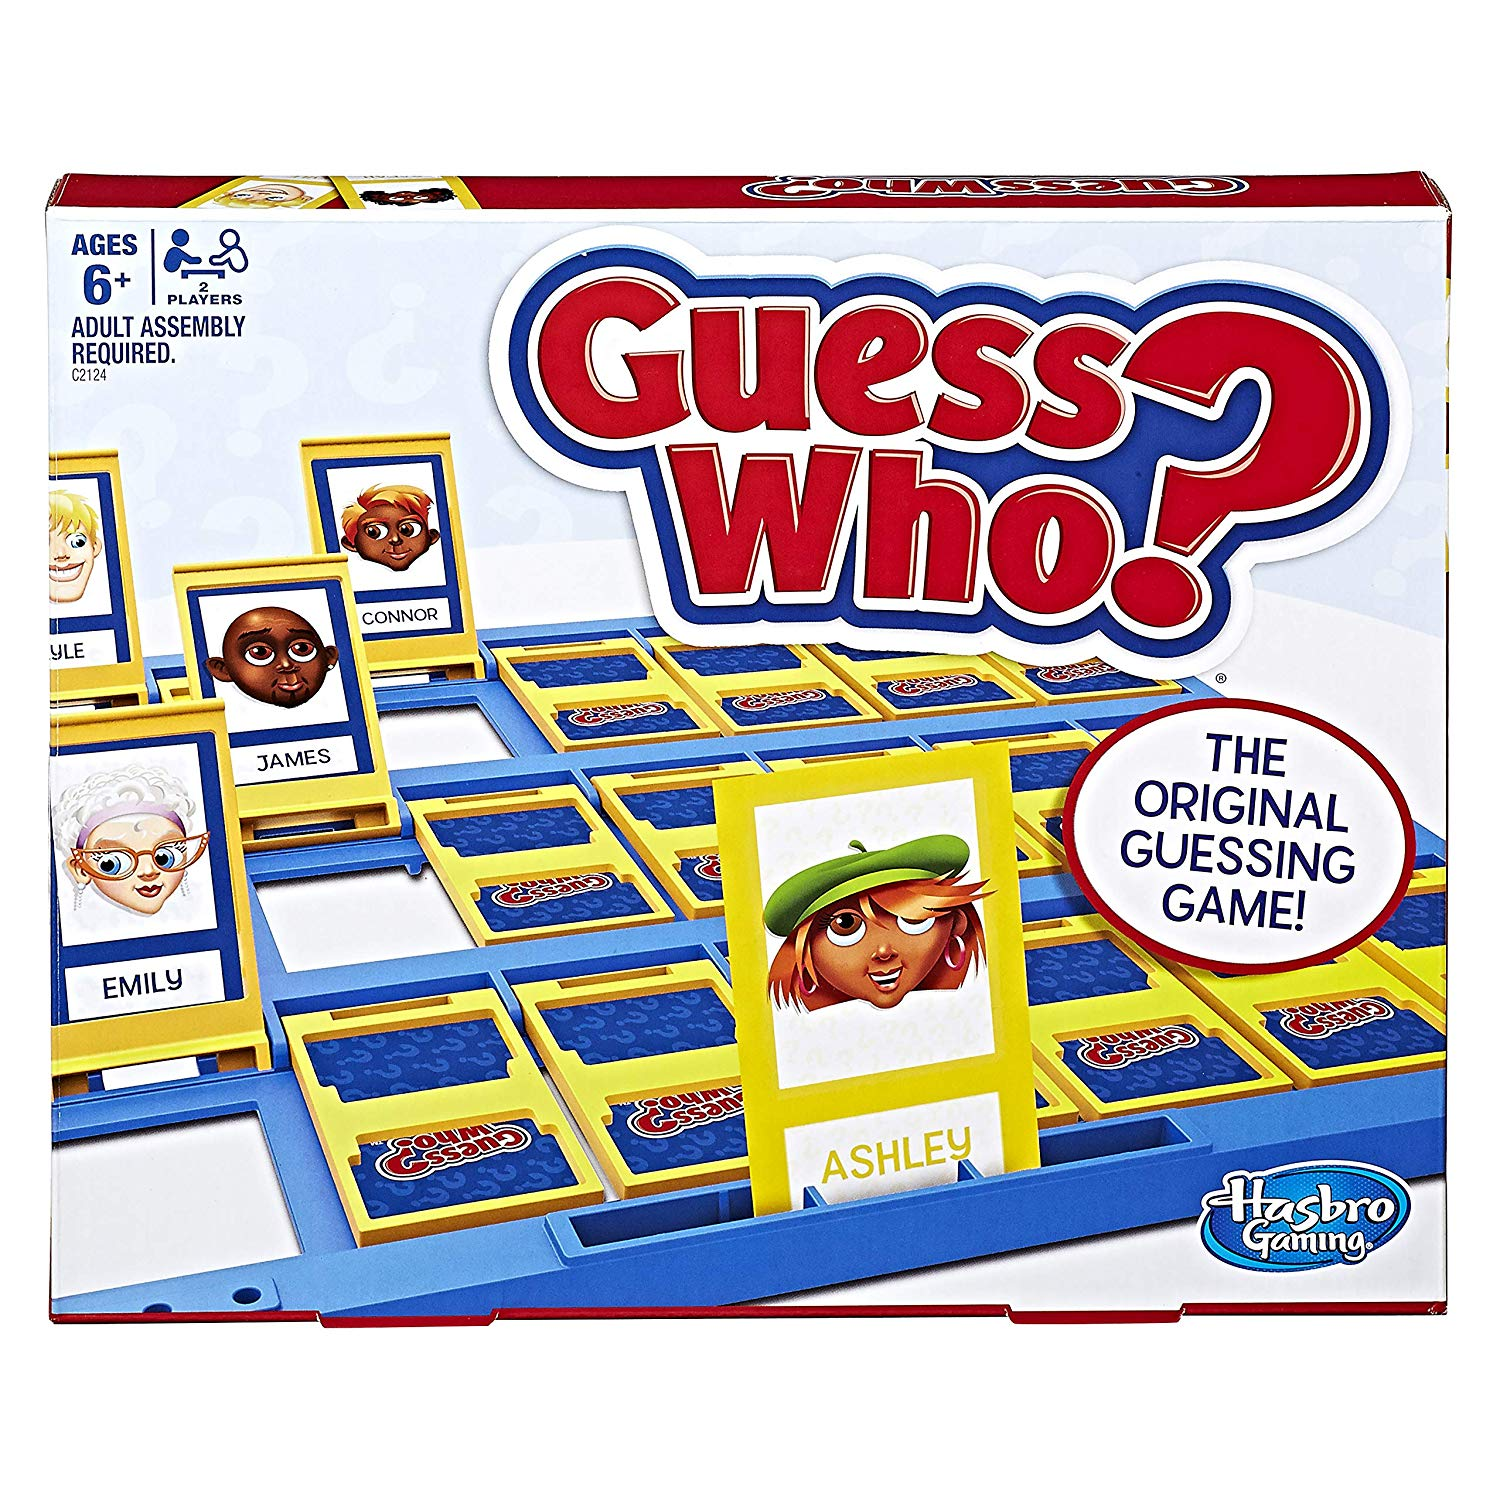 Guess Who? board game box image